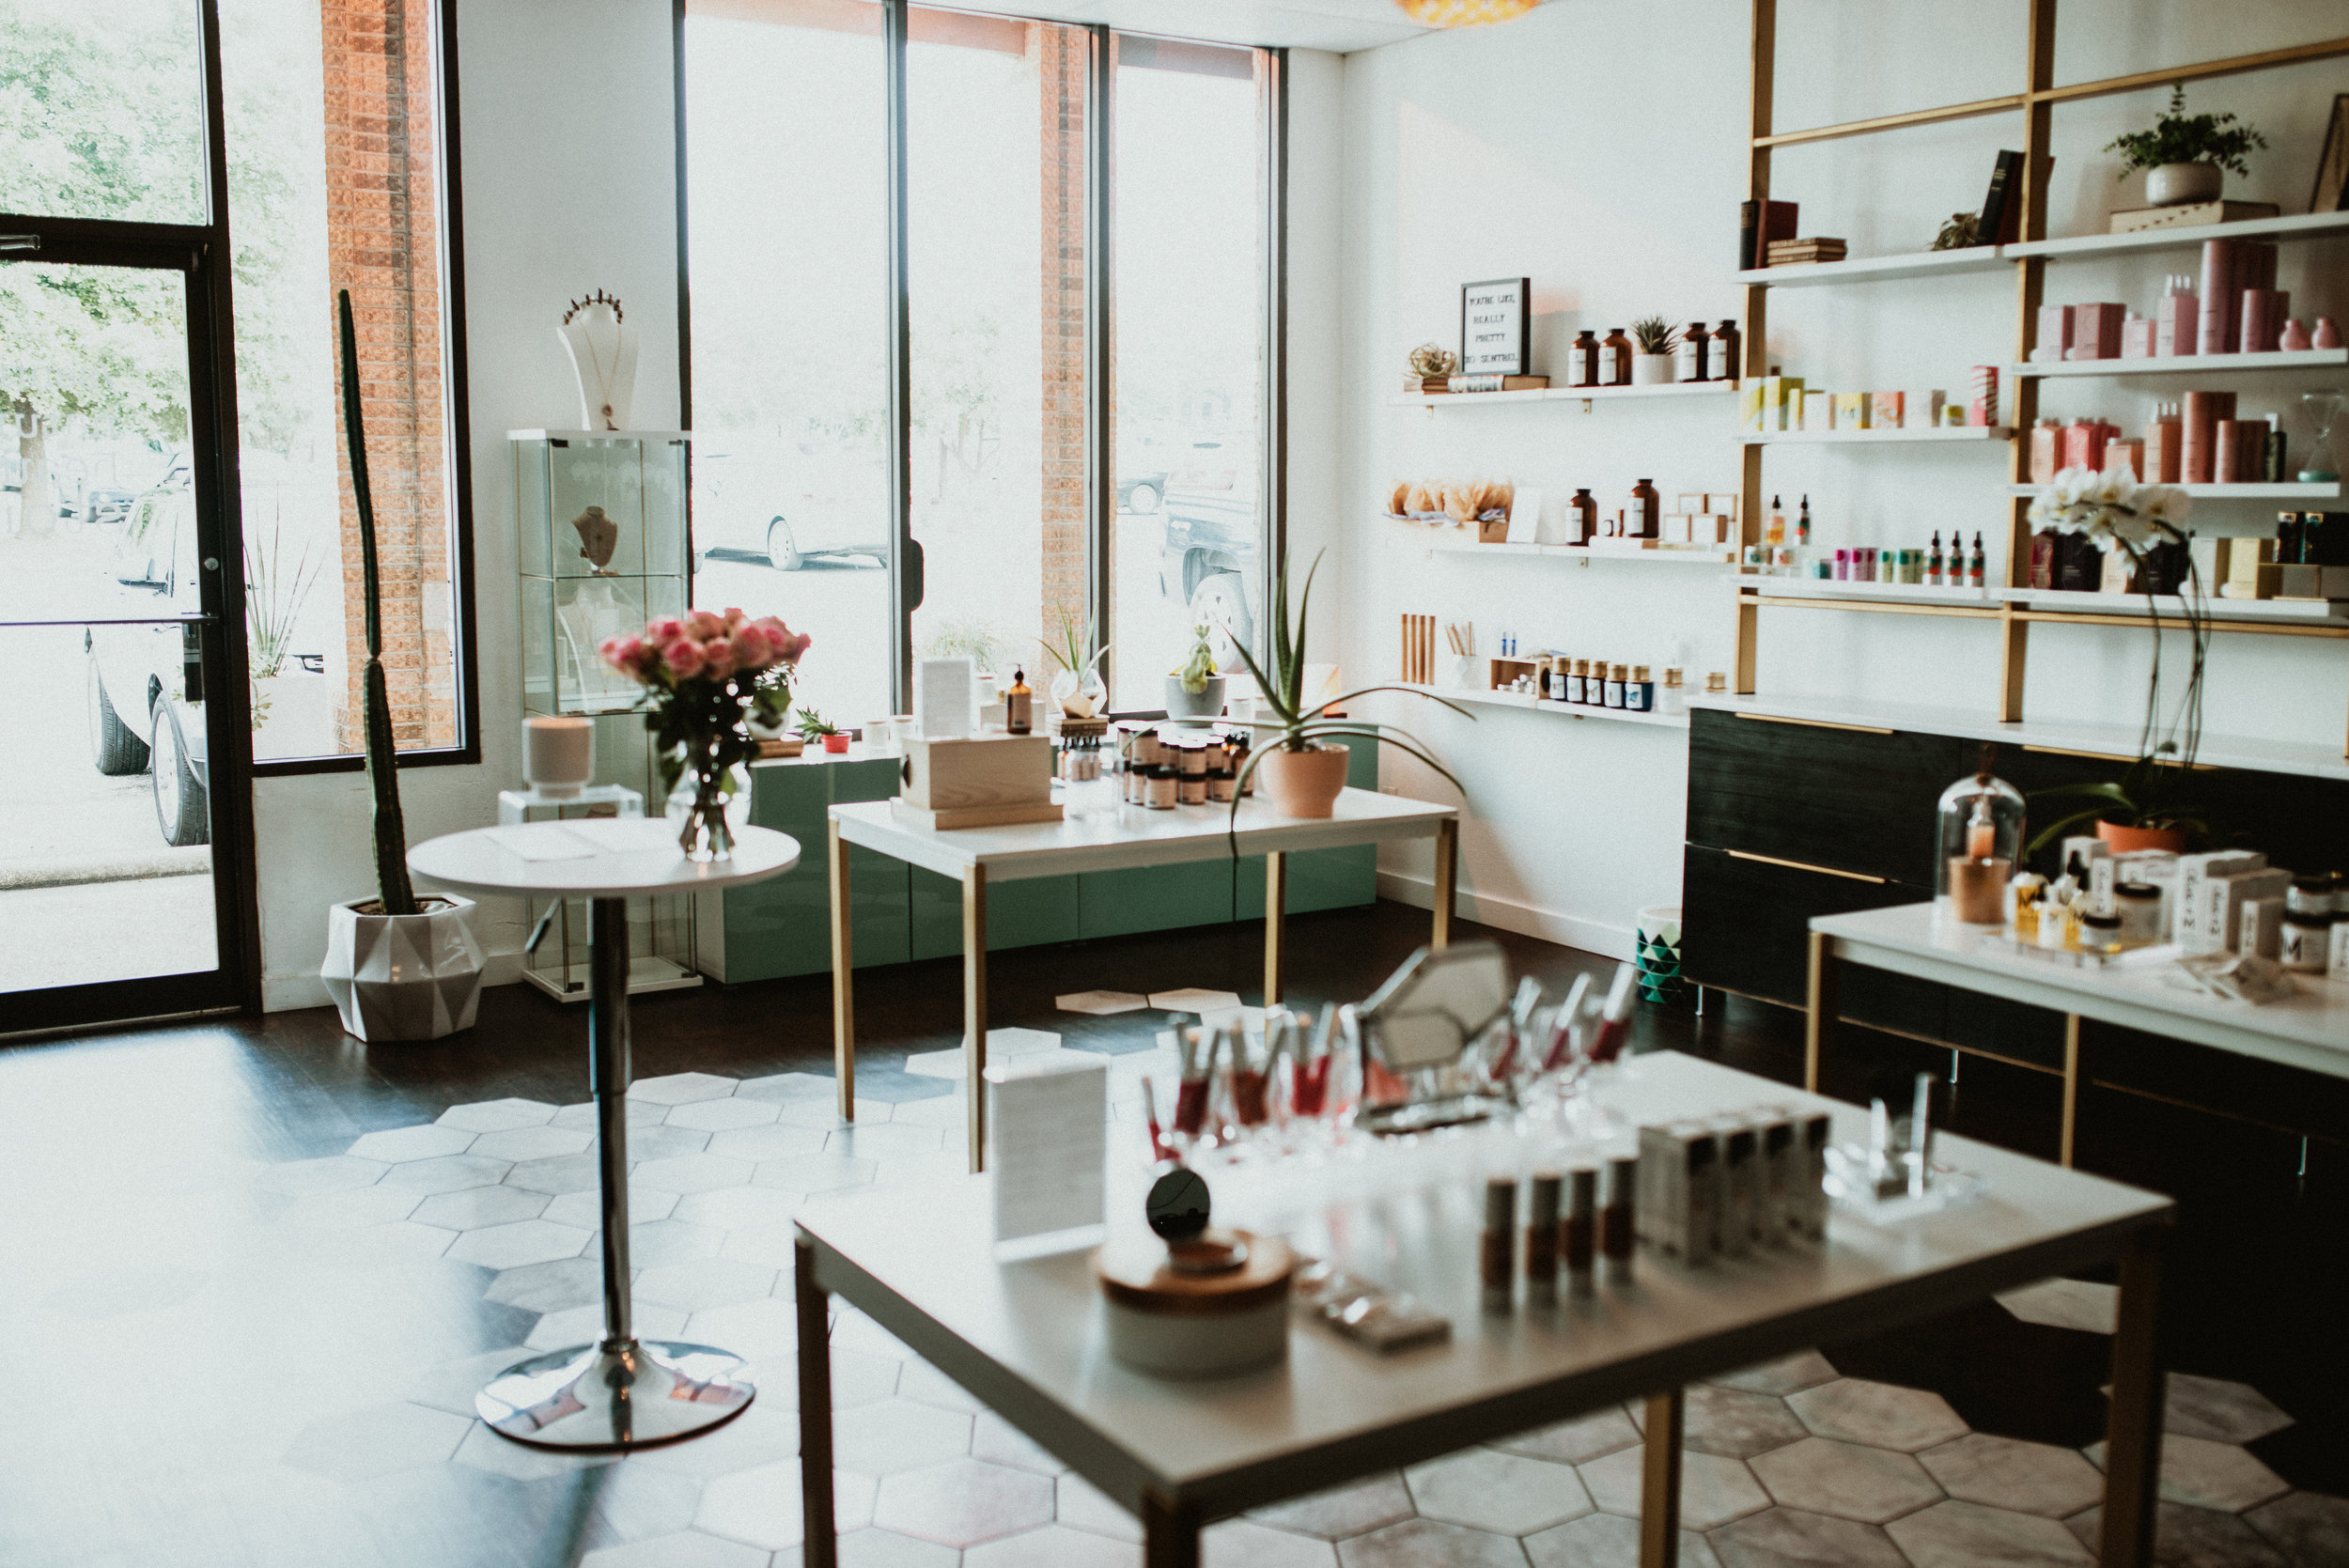 Sentrəl Beauty - Sentrəl Natural Beauty Store is a Conscious Beauty Store and Salon based in Austin, Texas. Founded in 2017 based on the belief that one should not have to sacrifice beauty standards in order to use safe and sustainable products.